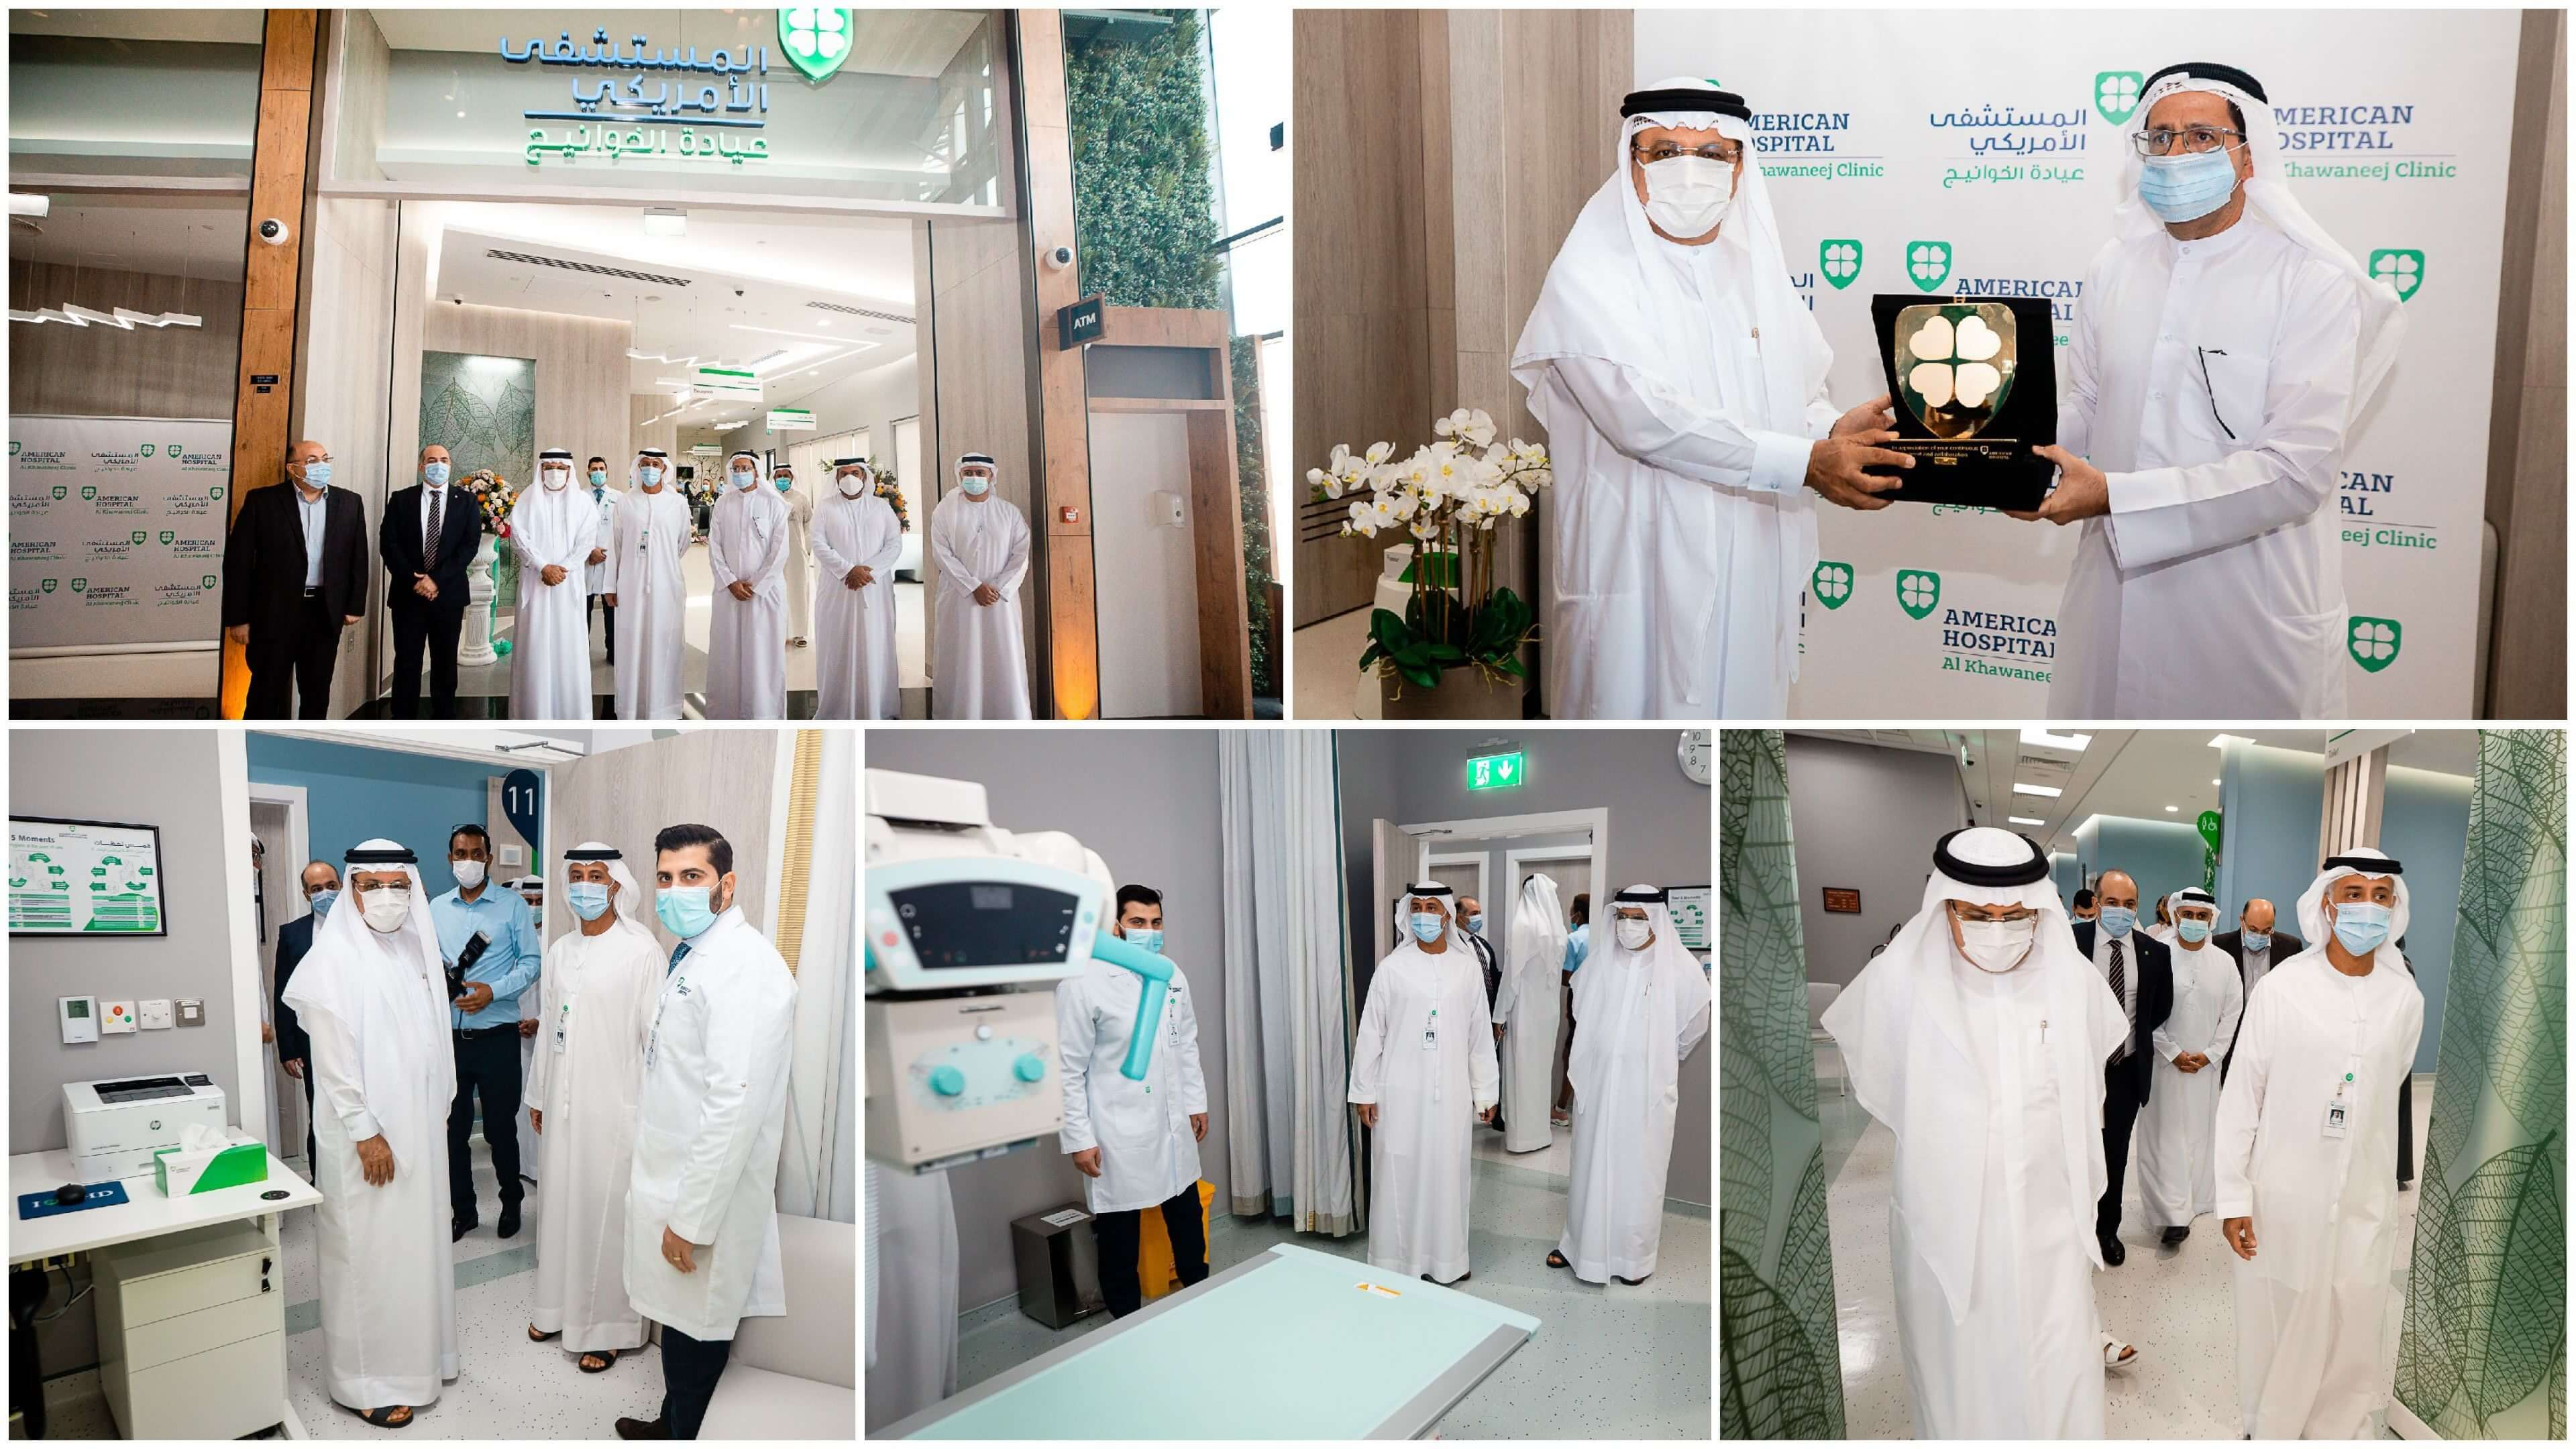 American Hospital is now closer to patients with the new community clinic in Al Khawaneej